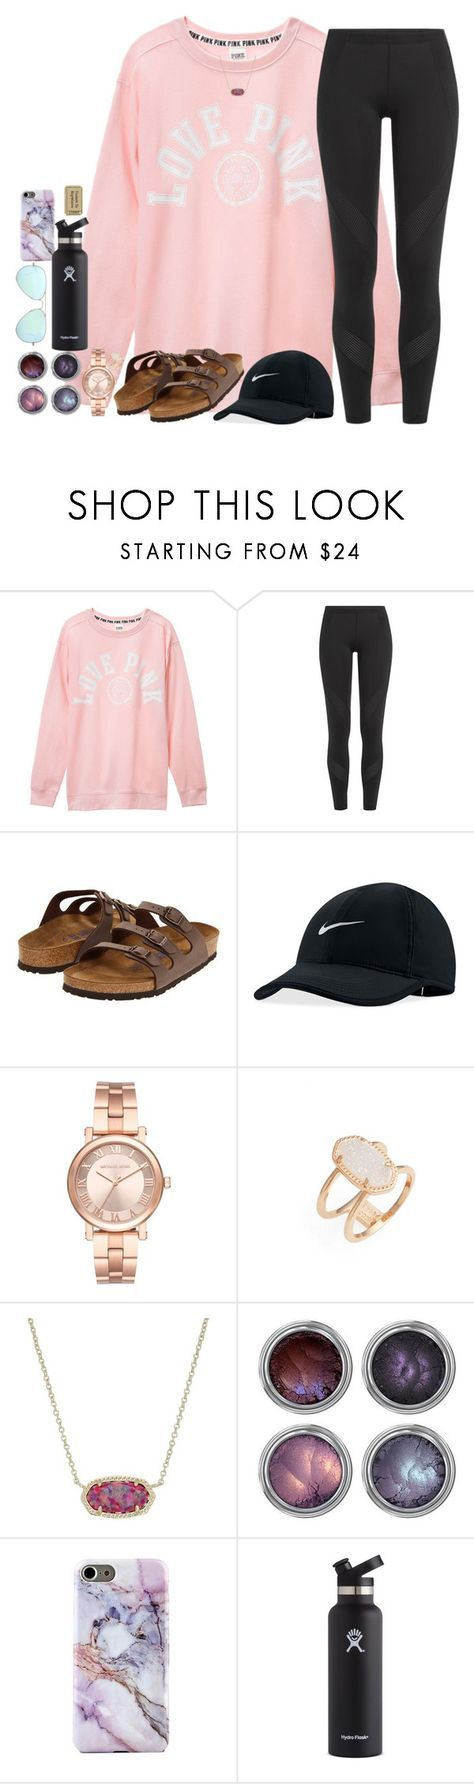 """"""""""" by southernstruttin ❤ liked on Polyvore featuring Victoria's Secret, adidas, Birkenstock, NIKE, Michael Kors, Kendra Scott, Hydro Flask and Ray-Ban"""